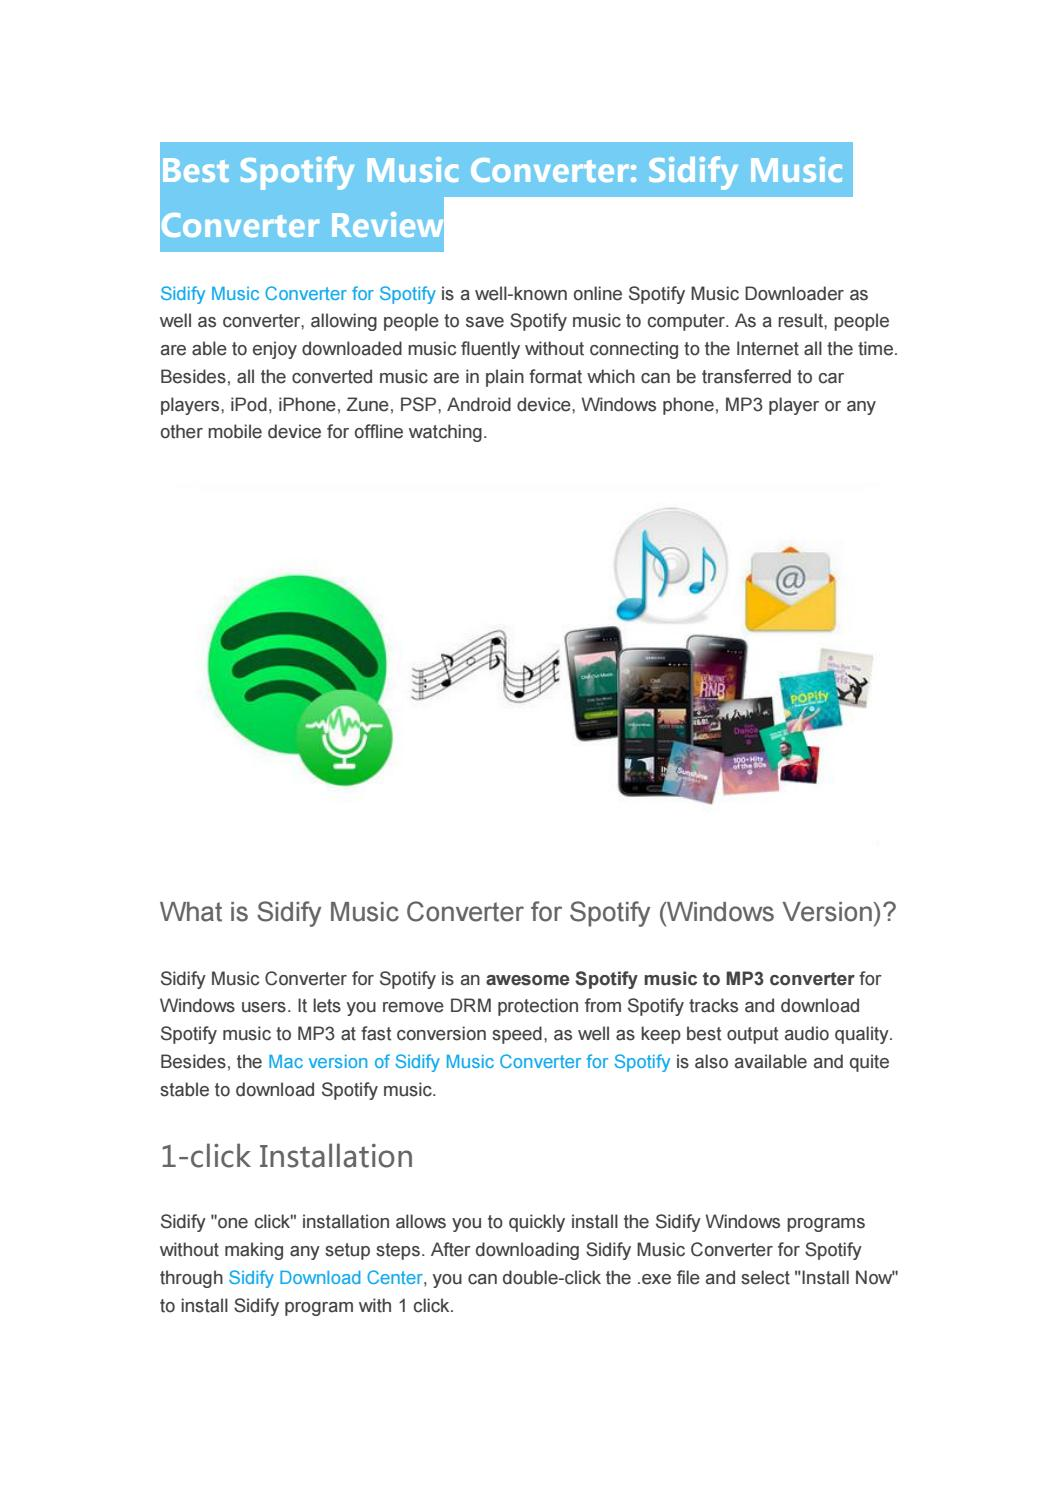 Best Spotify Converter Review -- Sidify Music Converter for Spotify